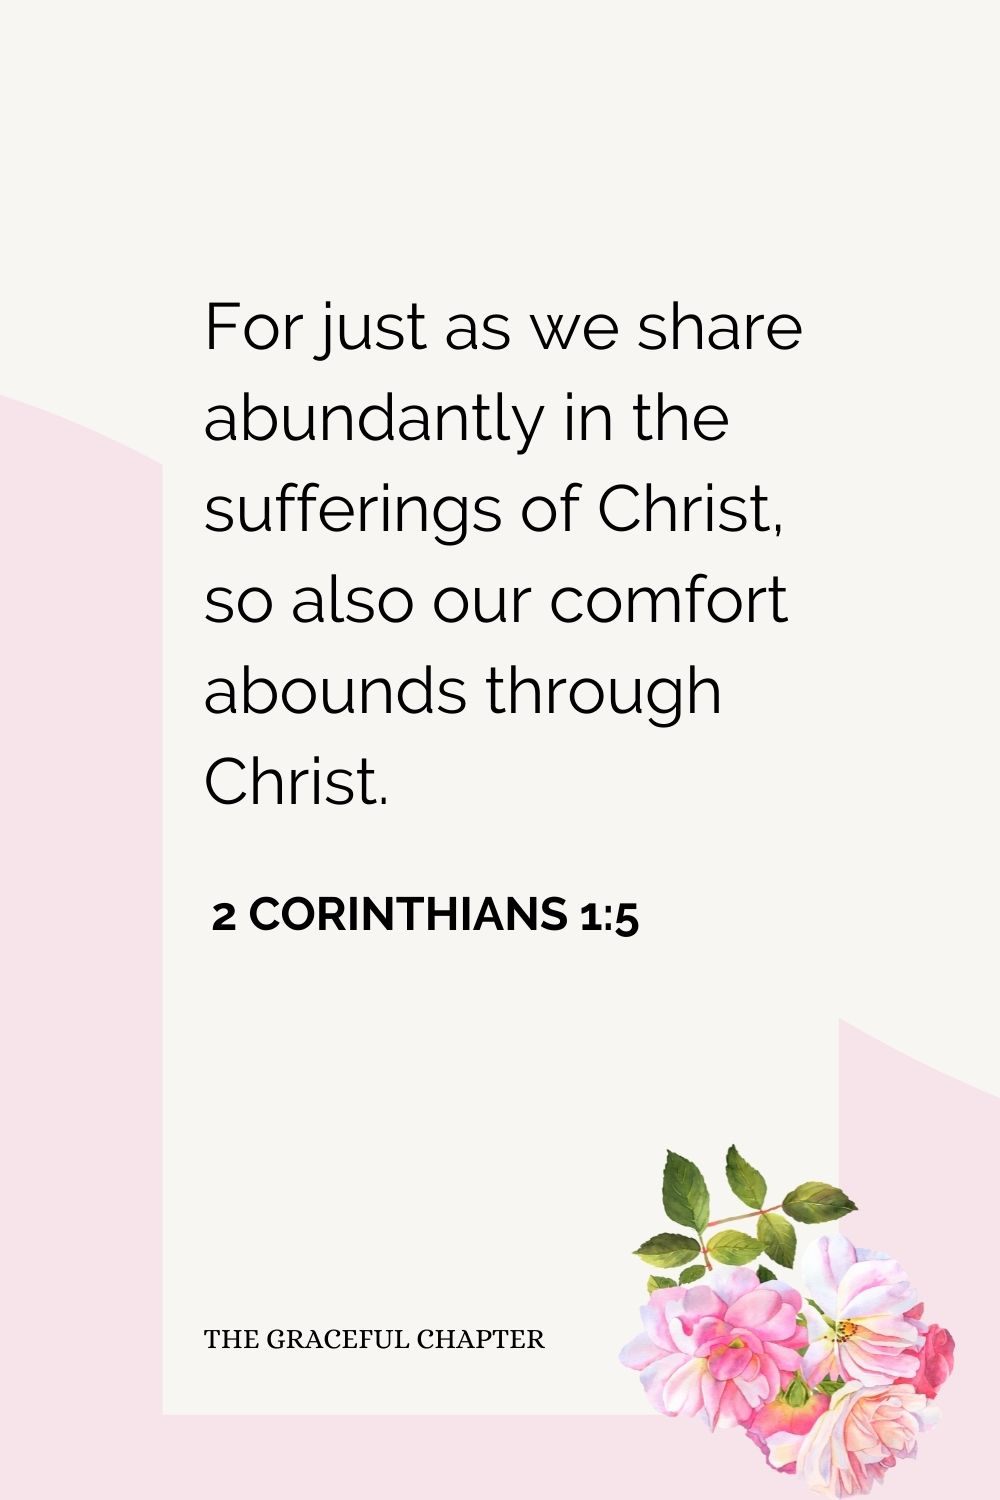 For just as we share abundantly in the sufferings of Christ, so also our comfort abounds through Christ. 2 Corinthians 1:5